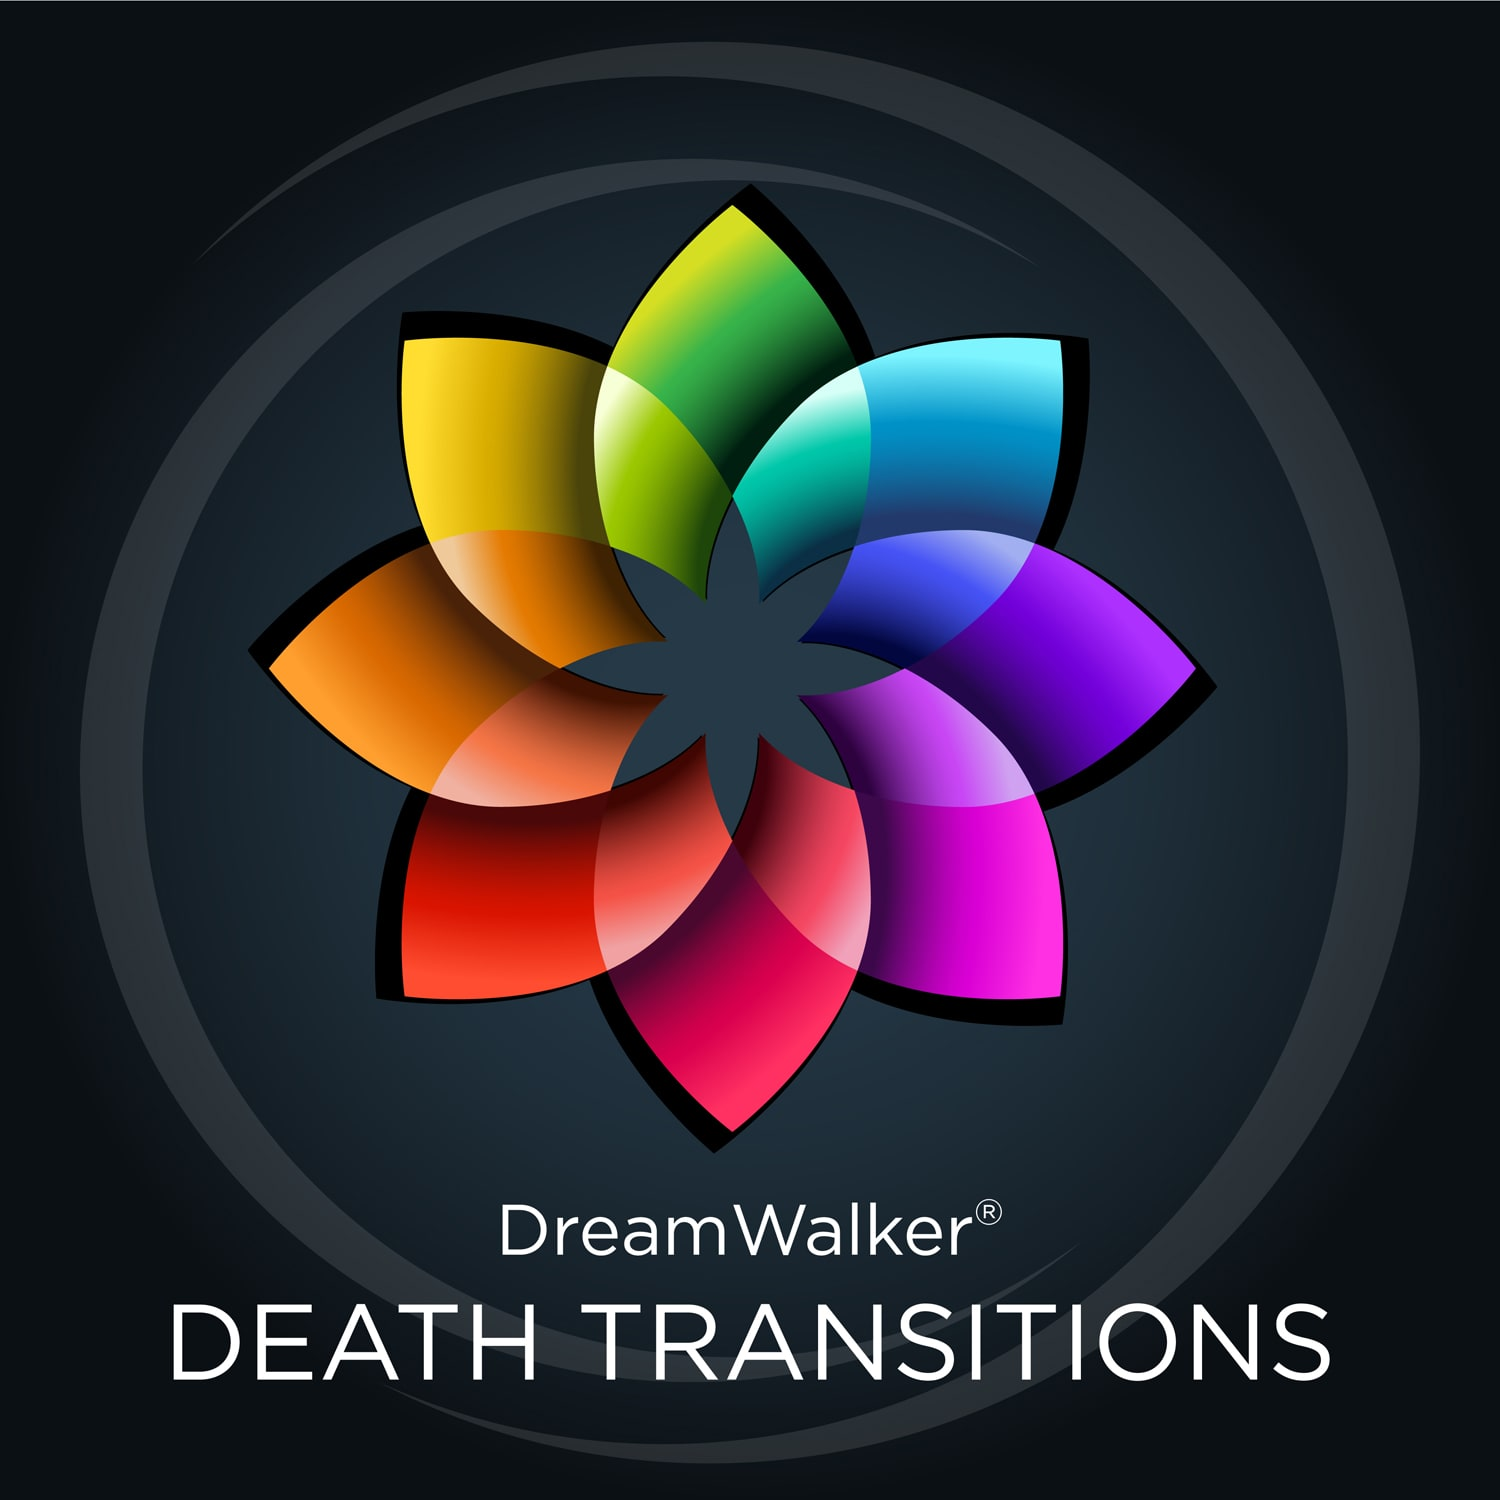 DreamWalker Death Transitions